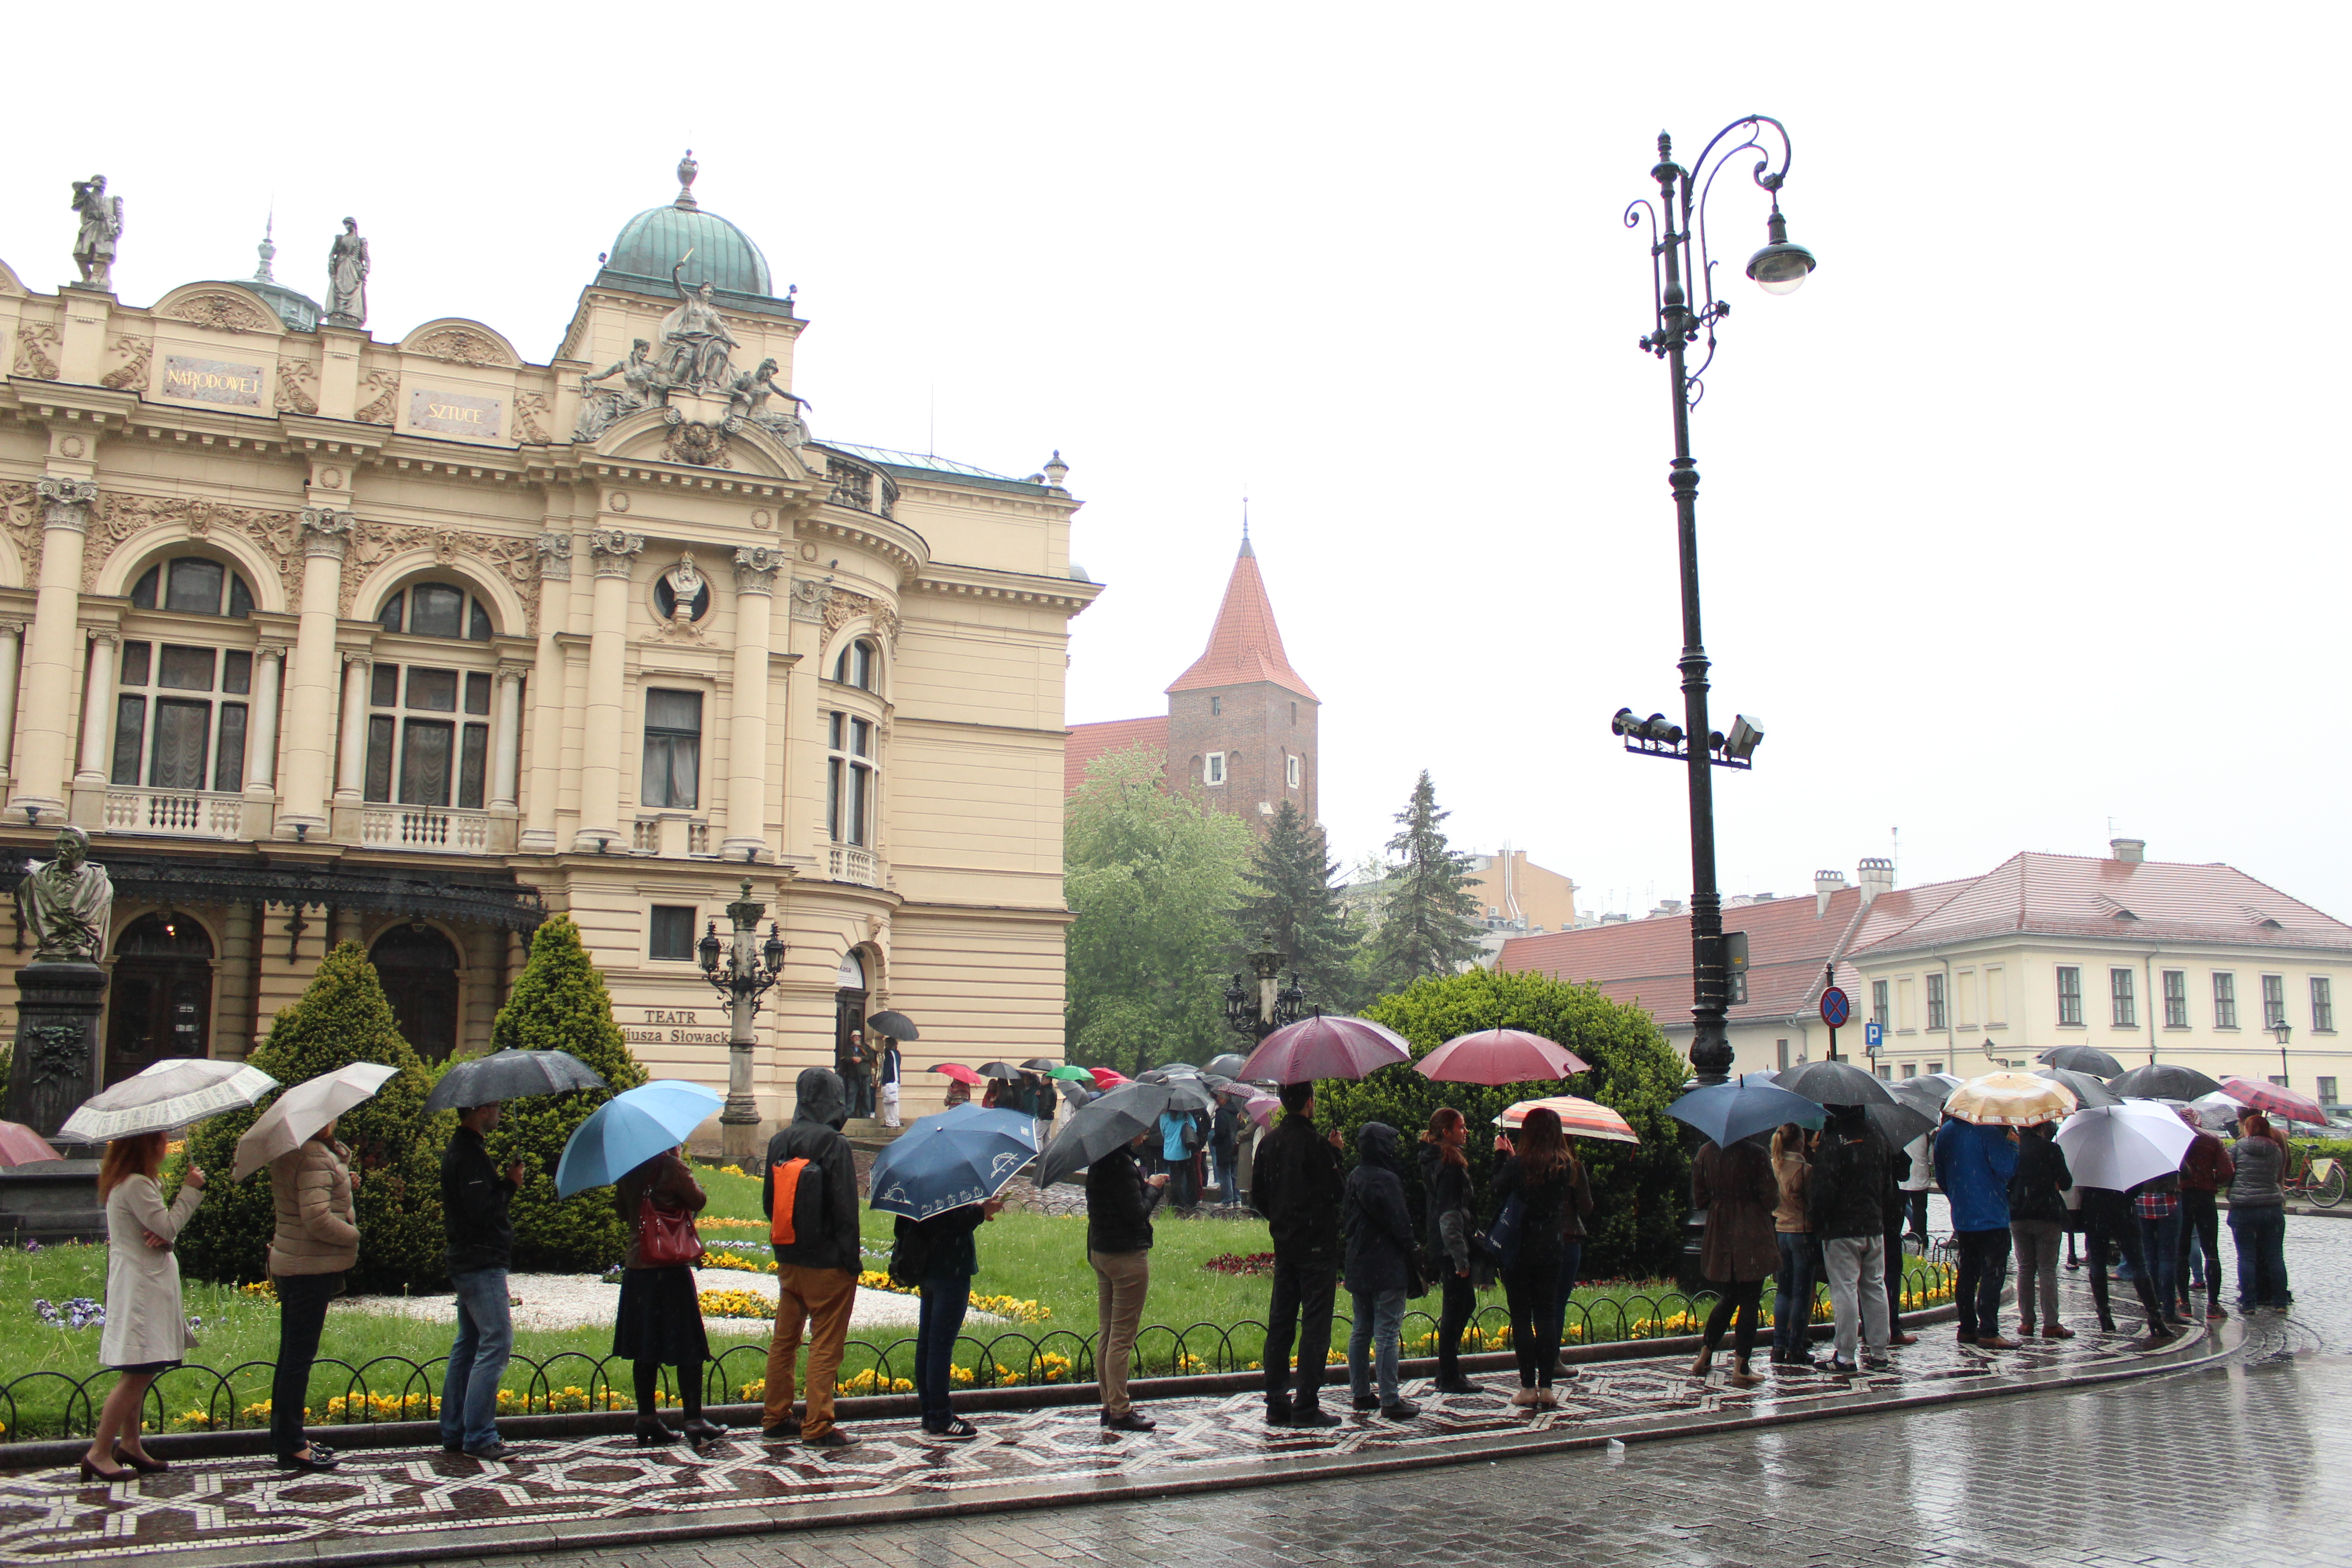 Queuing for cheap tickets during the '100 Eurocents Ticket' [Bilet za 250 groszy] event. Zbigniew Raszewski Theatre Institute records.